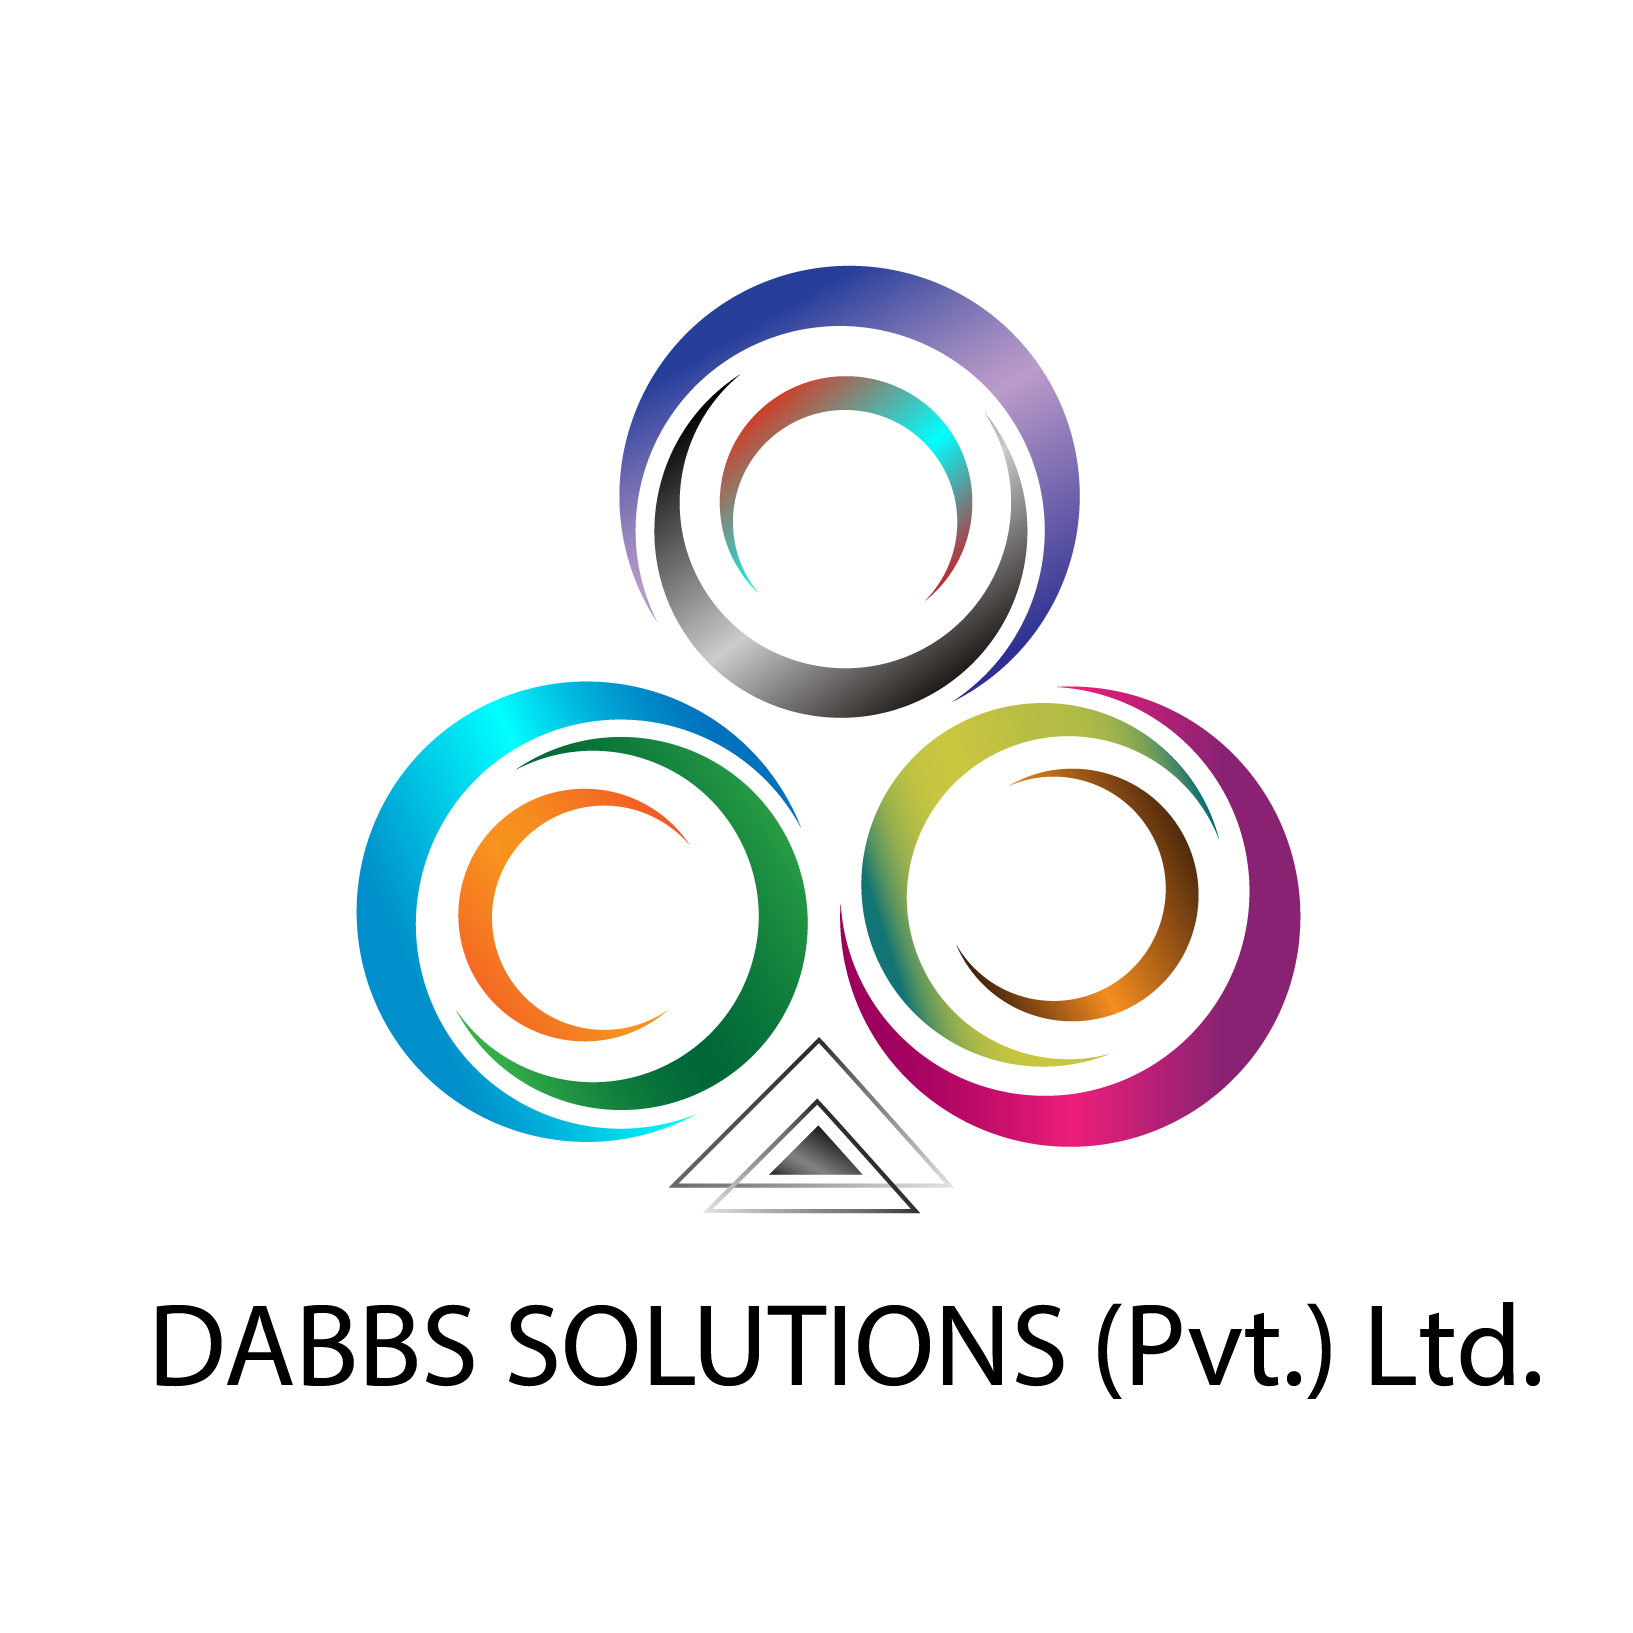 DABBS Solutions (Pvt.) Ltd.